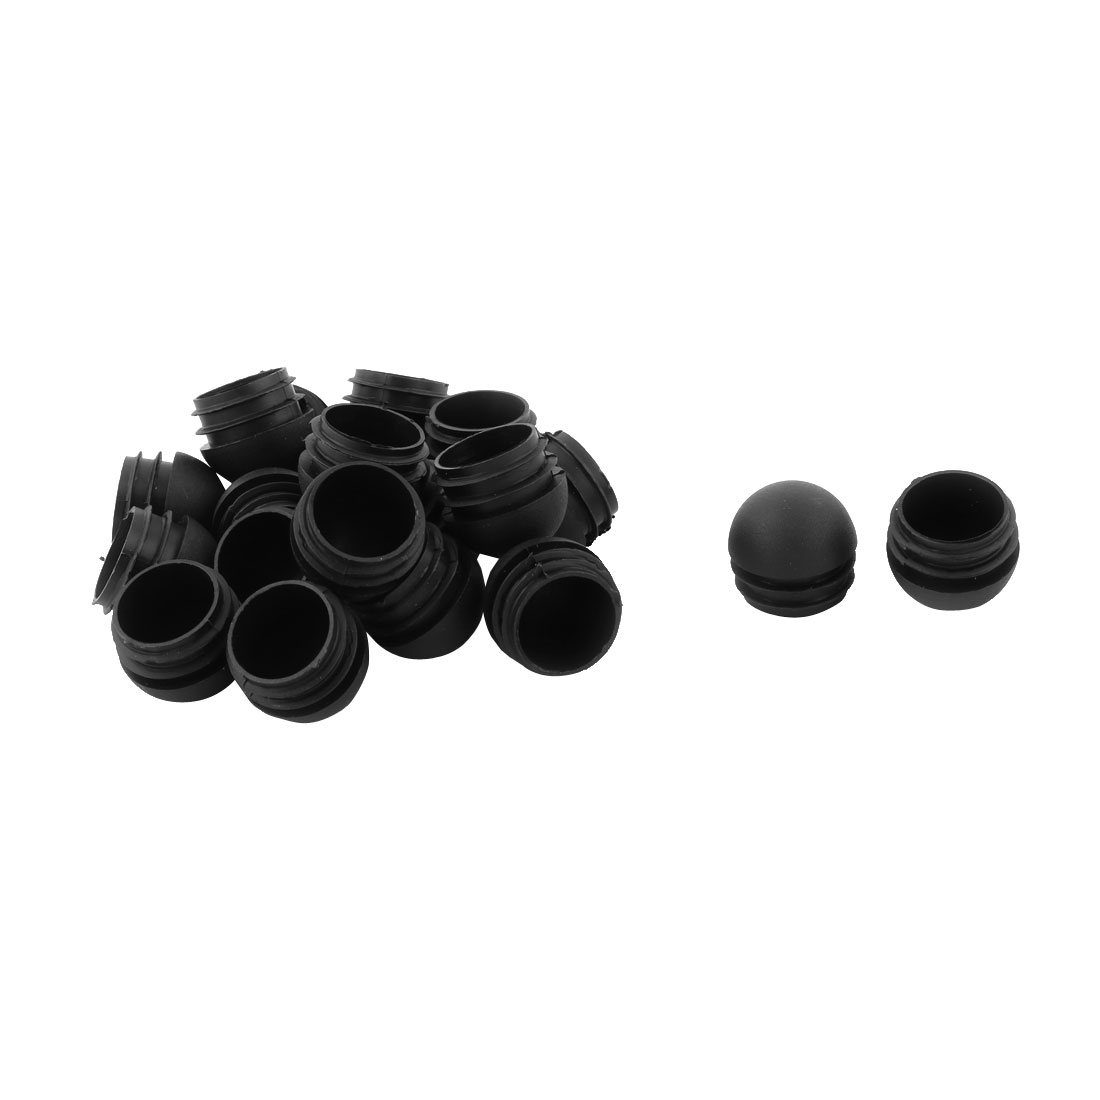 Plastic Round Shaped Furniture Feet Tube Insert End Cap Black 32mm Dia 20pcs